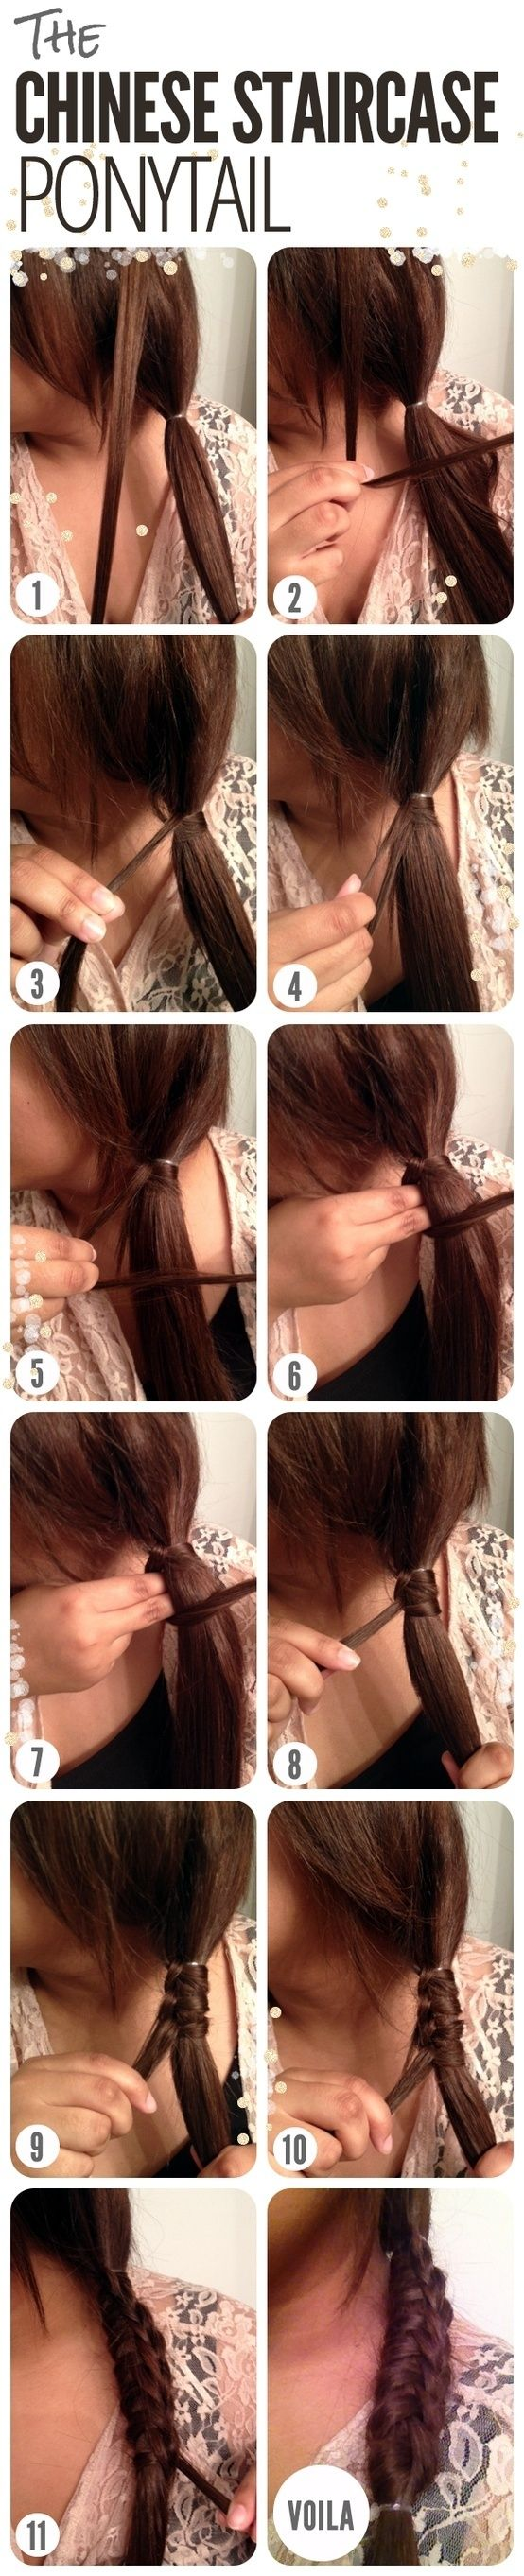 Chinese Staircase Ponytail Hair Tutorial